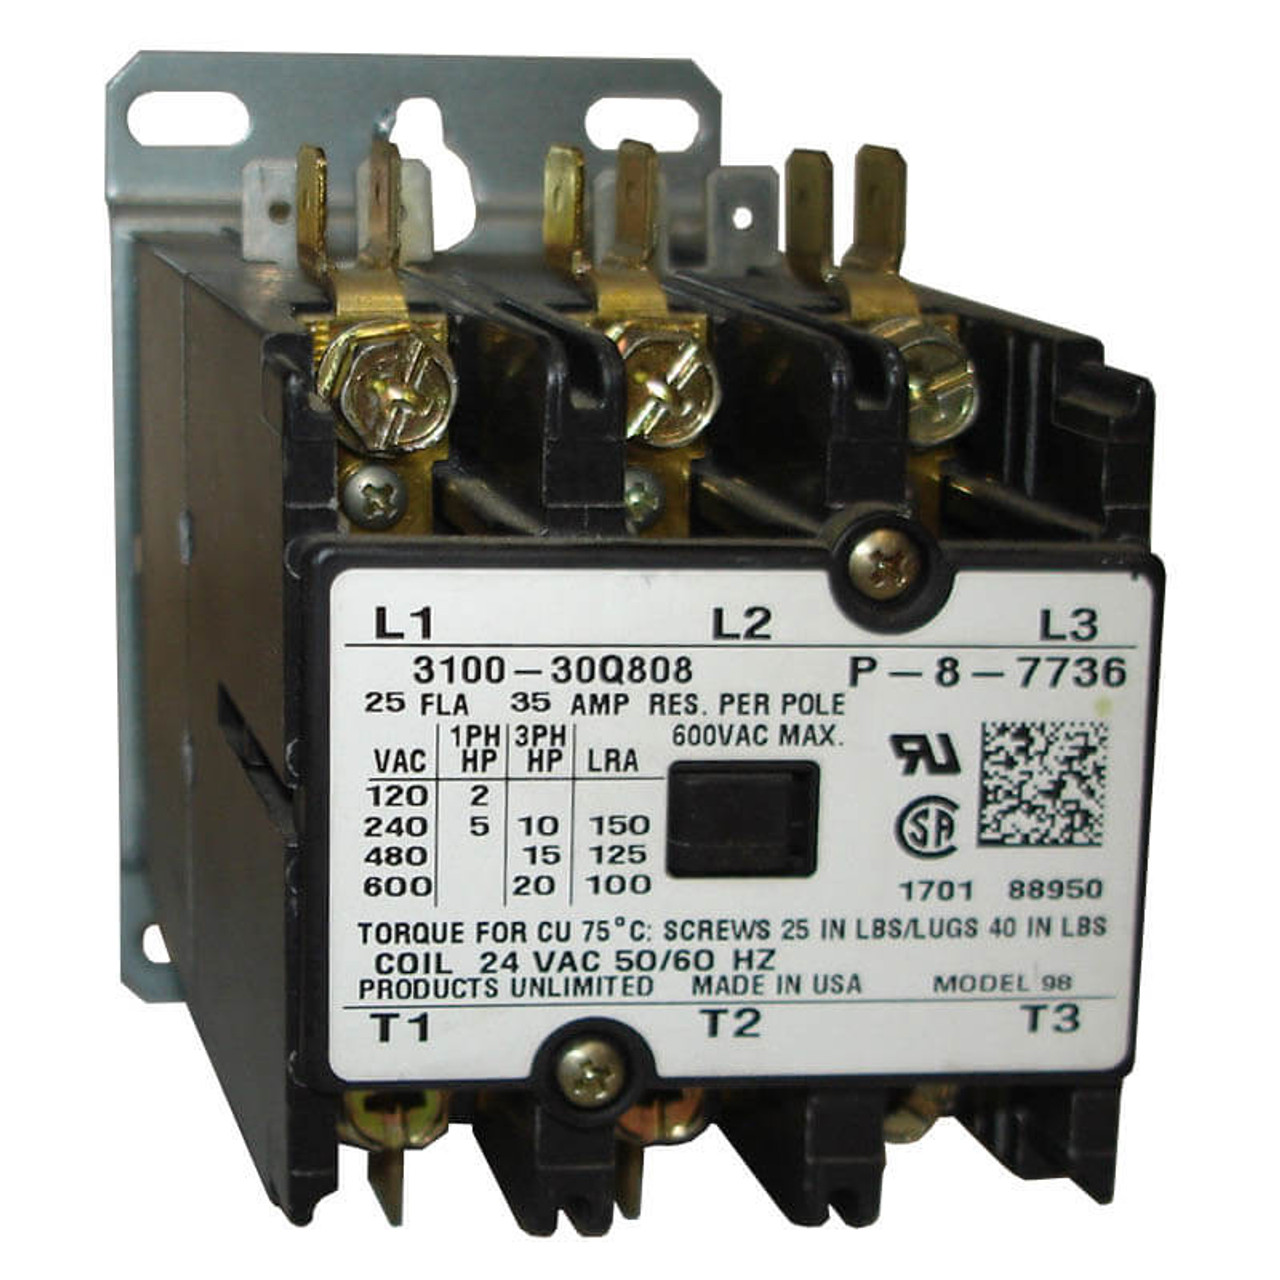 Wiring Diagram Likewise 5 Wire Relay Wiring Diagram On 4 Pole Relay